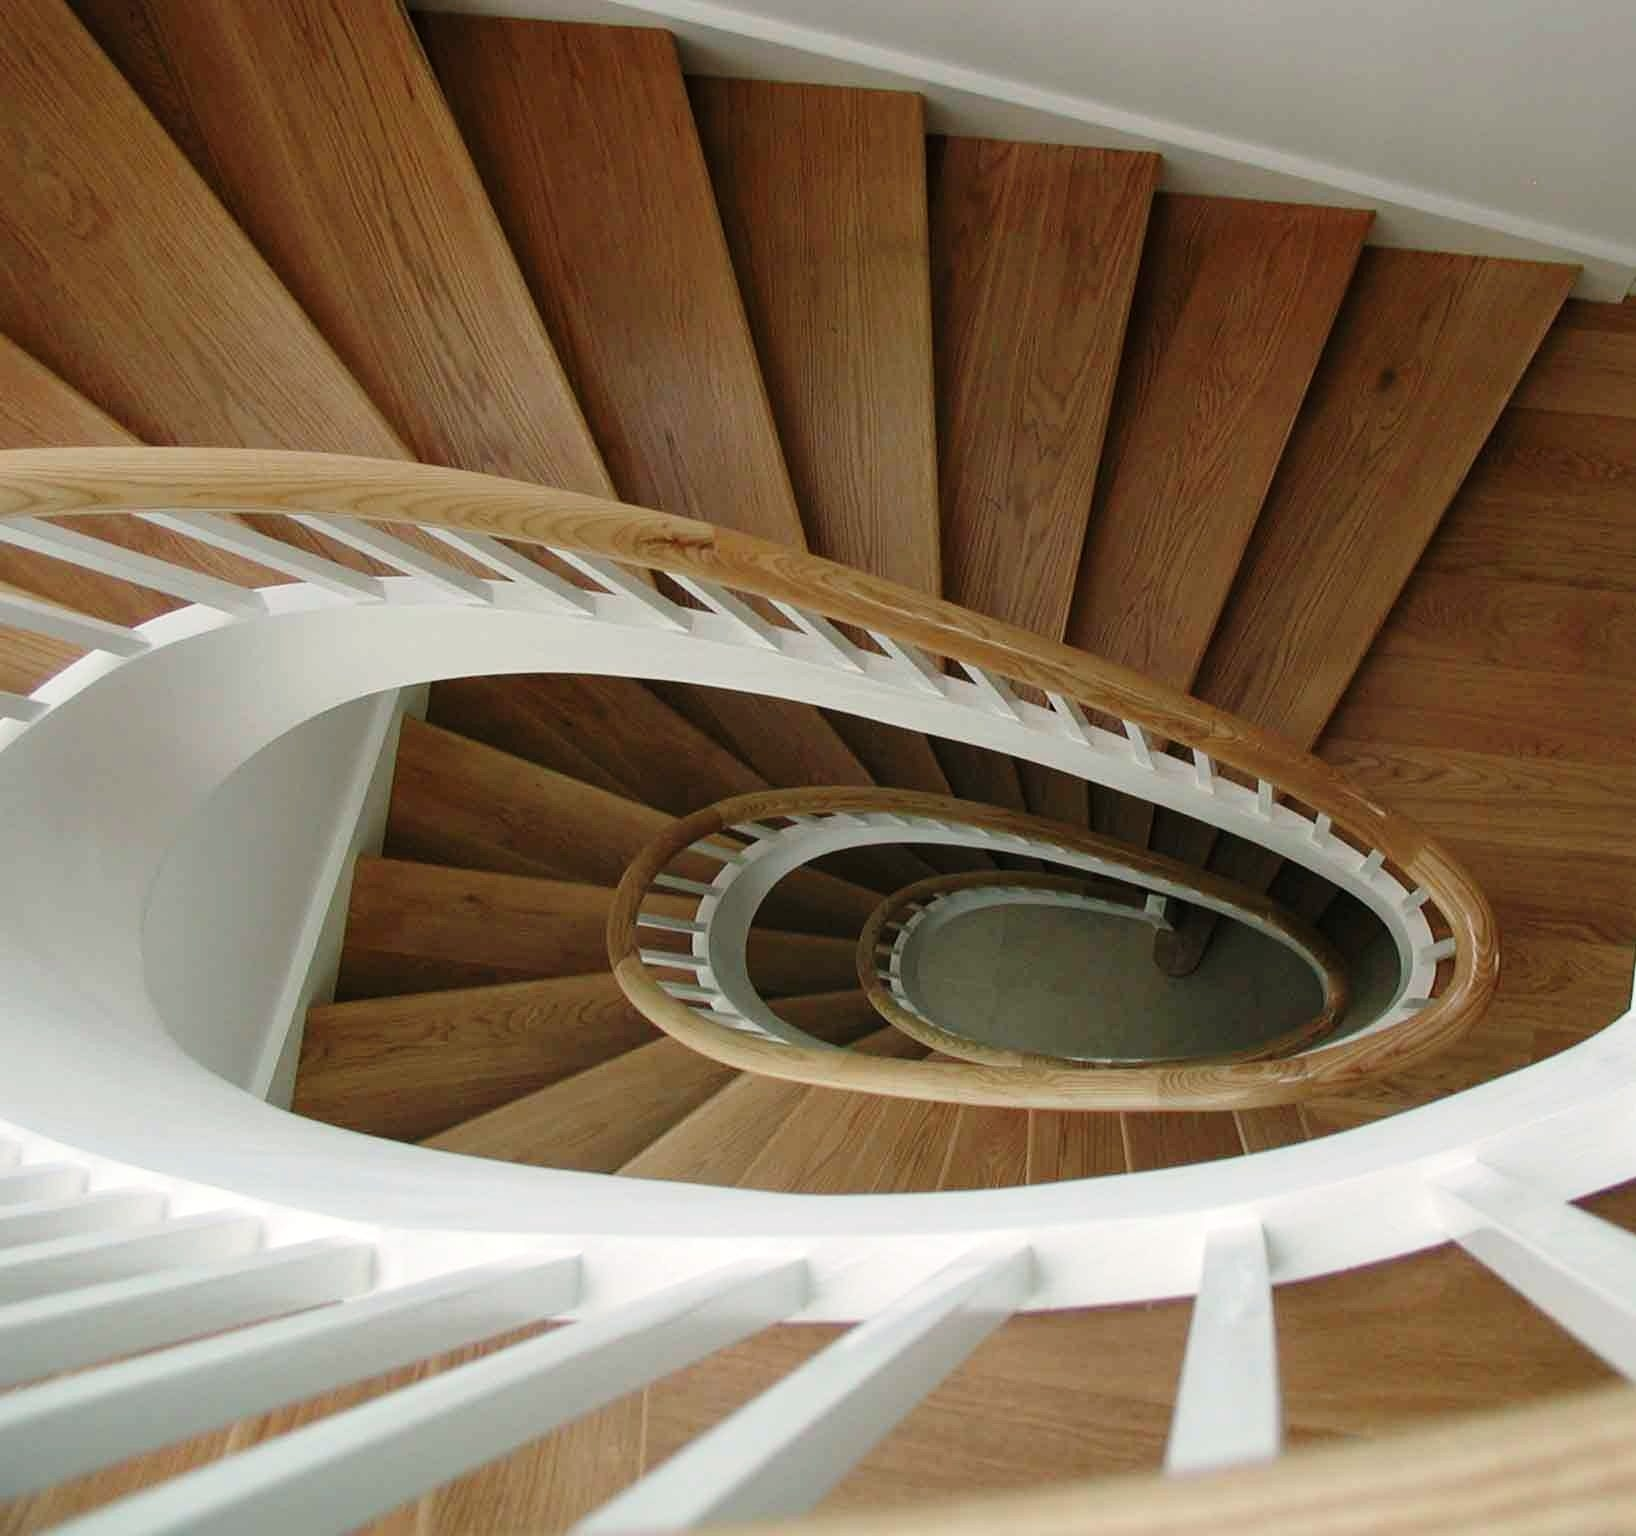 Over 100 Bookings for Stairs Seminar on 28th March